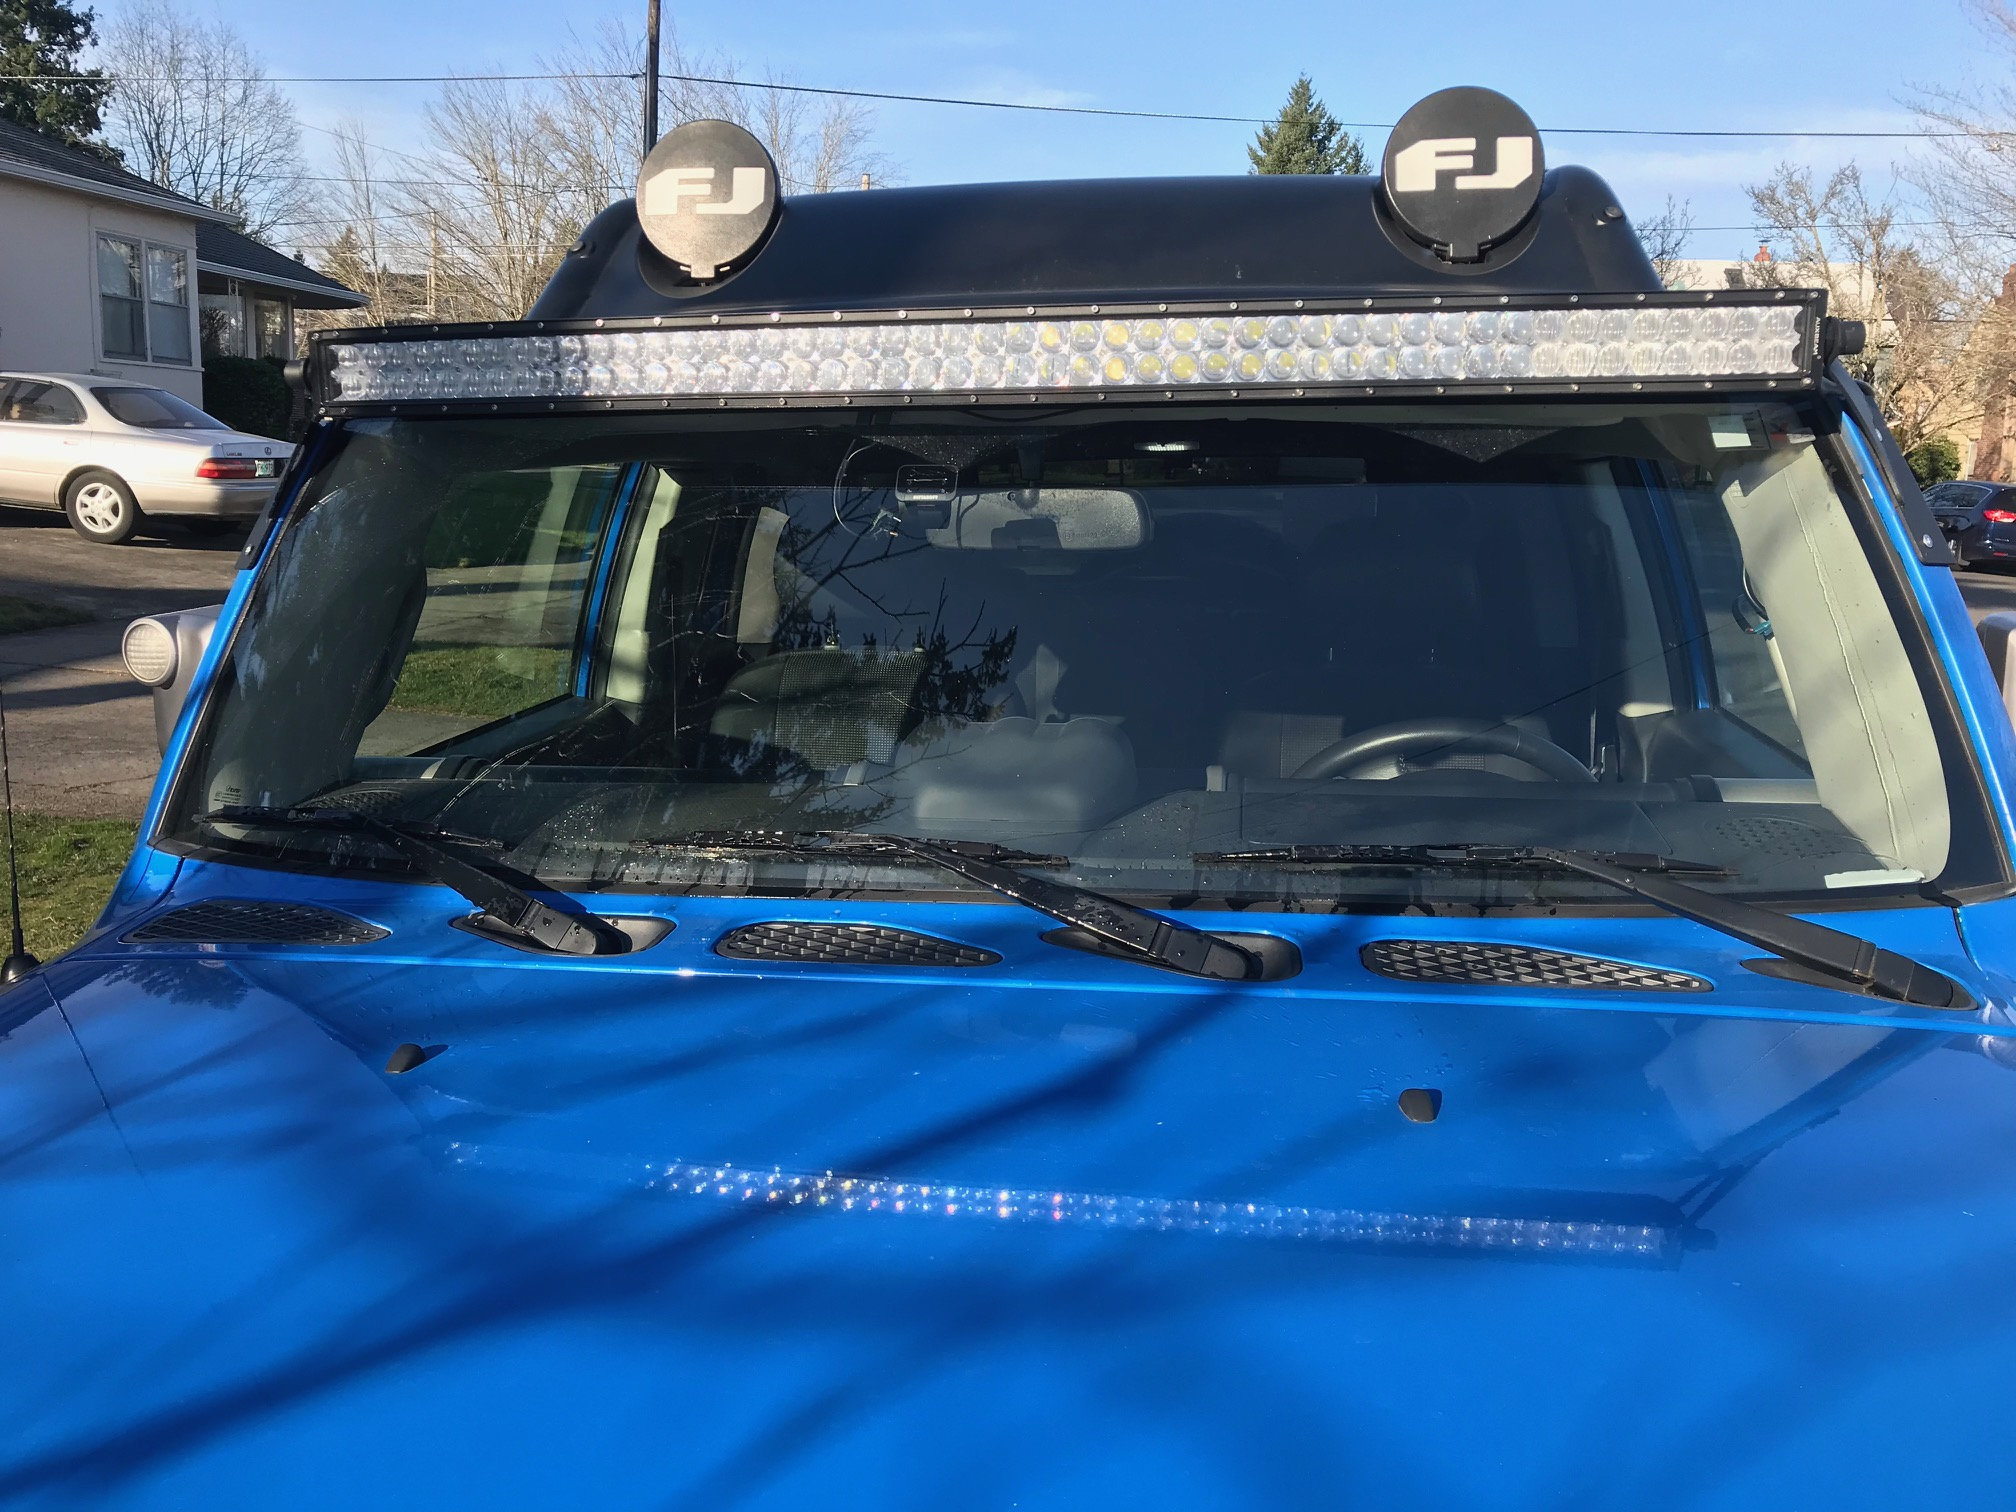 What did you do TO your FJ Cruiser TODAY?-img_6781.jpg